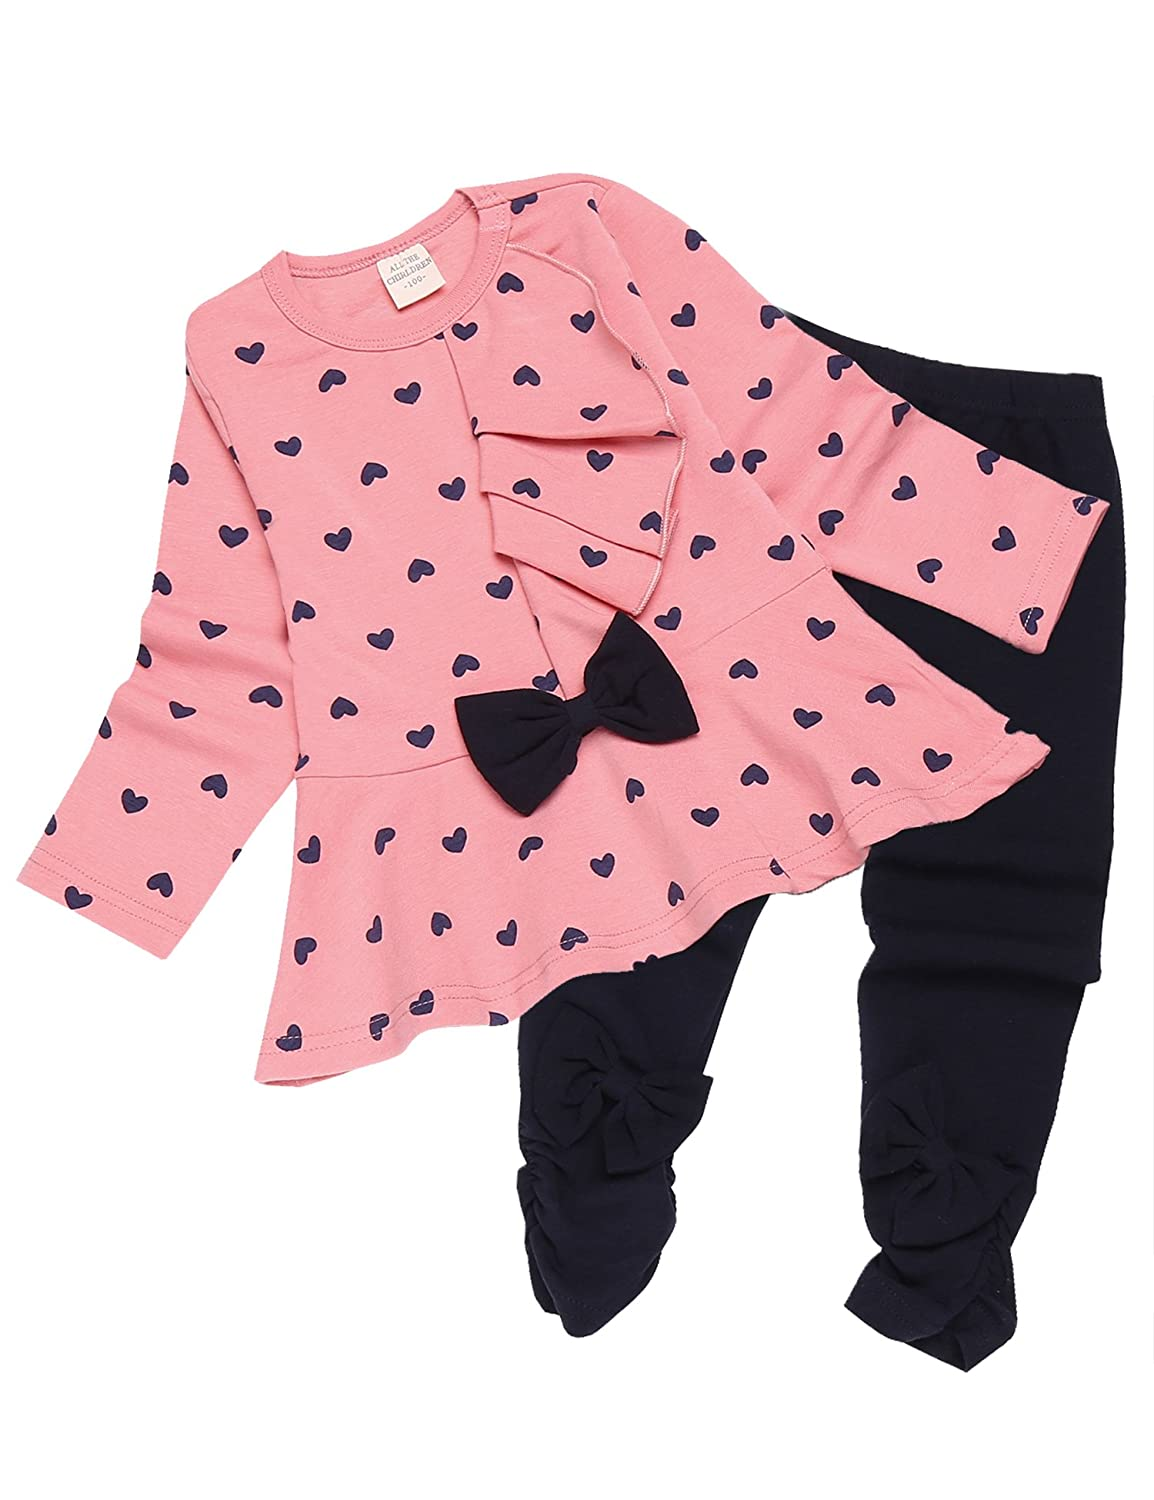 Zeagoo Cute Toddler Baby Girl Clothes Set Bowknot Long Sleeve Tops and Pants Kids 2pcs Outfits ZE011174